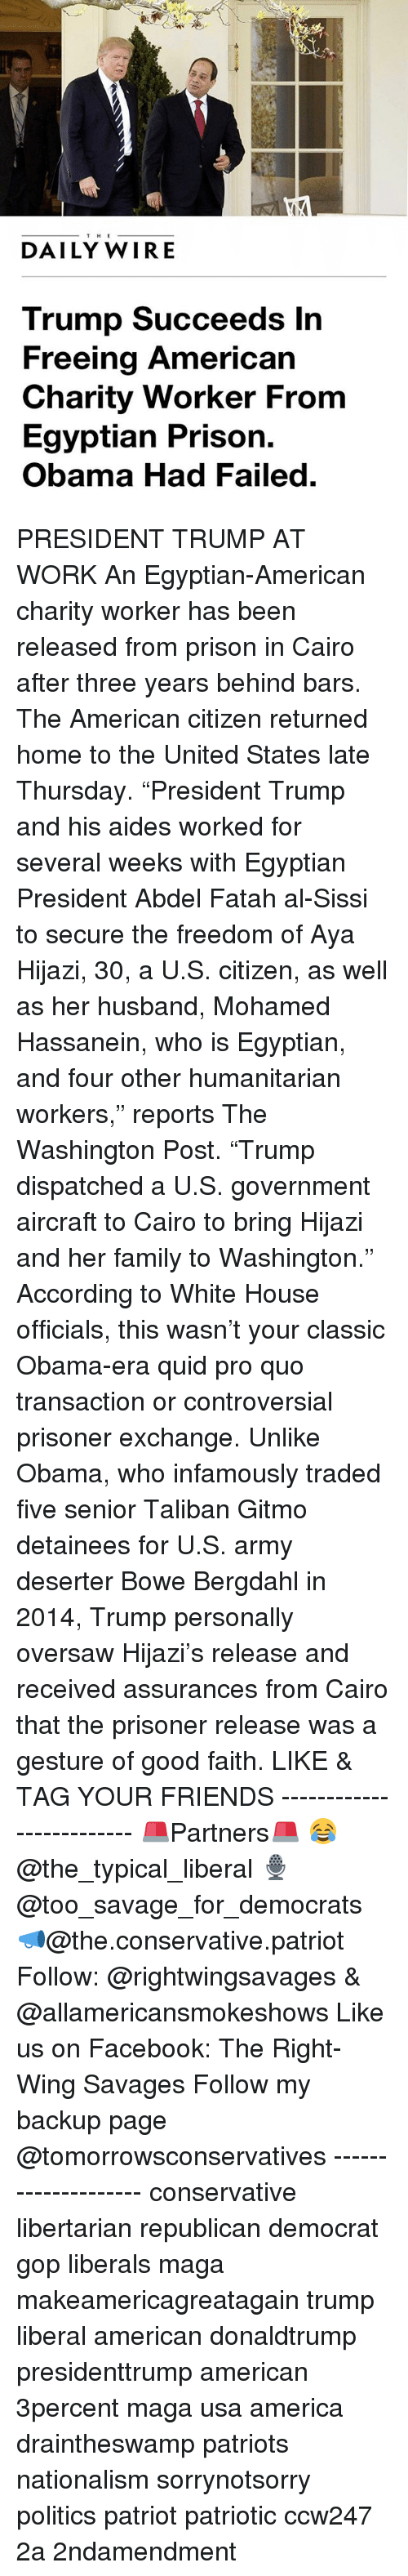 """America, Facebook, and Family: THE  DAILY WIRE  Trump Succeeds In  Freeing American  Charity Worker From  Egyptian Prison.  Obama Had Failed PRESIDENT TRUMP AT WORK An Egyptian-American charity worker has been released from prison in Cairo after three years behind bars. The American citizen returned home to the United States late Thursday. """"President Trump and his aides worked for several weeks with Egyptian President Abdel Fatah al-Sissi to secure the freedom of Aya Hijazi, 30, a U.S. citizen, as well as her husband, Mohamed Hassanein, who is Egyptian, and four other humanitarian workers,"""" reports The Washington Post. """"Trump dispatched a U.S. government aircraft to Cairo to bring Hijazi and her family to Washington."""" According to White House officials, this wasn't your classic Obama-era quid pro quo transaction or controversial prisoner exchange. Unlike Obama, who infamously traded five senior Taliban Gitmo detainees for U.S. army deserter Bowe Bergdahl in 2014, Trump personally oversaw Hijazi's release and received assurances from Cairo that the prisoner release was a gesture of good faith. LIKE & TAG YOUR FRIENDS ------------------------- 🚨Partners🚨 😂@the_typical_liberal 🎙@too_savage_for_democrats 📣@the.conservative.patriot Follow: @rightwingsavages & @allamericansmokeshows Like us on Facebook: The Right-Wing Savages Follow my backup page @tomorrowsconservatives -------------------- conservative libertarian republican democrat gop liberals maga makeamericagreatagain trump liberal american donaldtrump presidenttrump american 3percent maga usa america draintheswamp patriots nationalism sorrynotsorry politics patriot patriotic ccw247 2a 2ndamendment"""